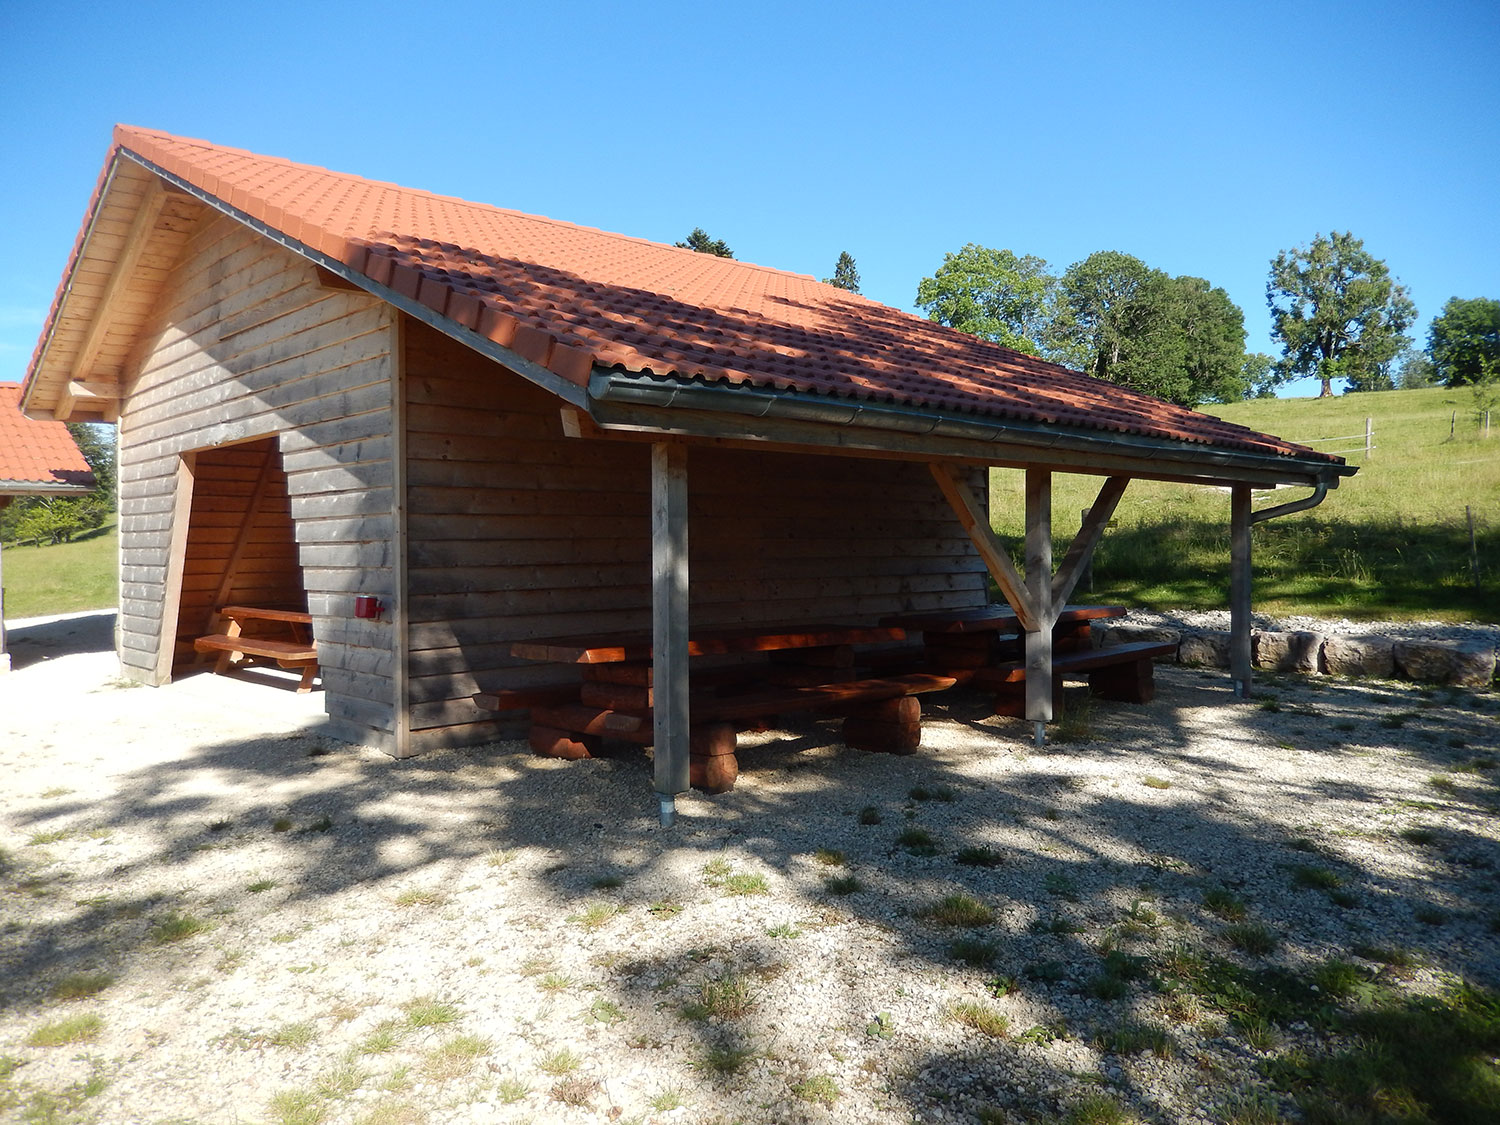 cabane-forestiere-saulcy-jura-suisse-6